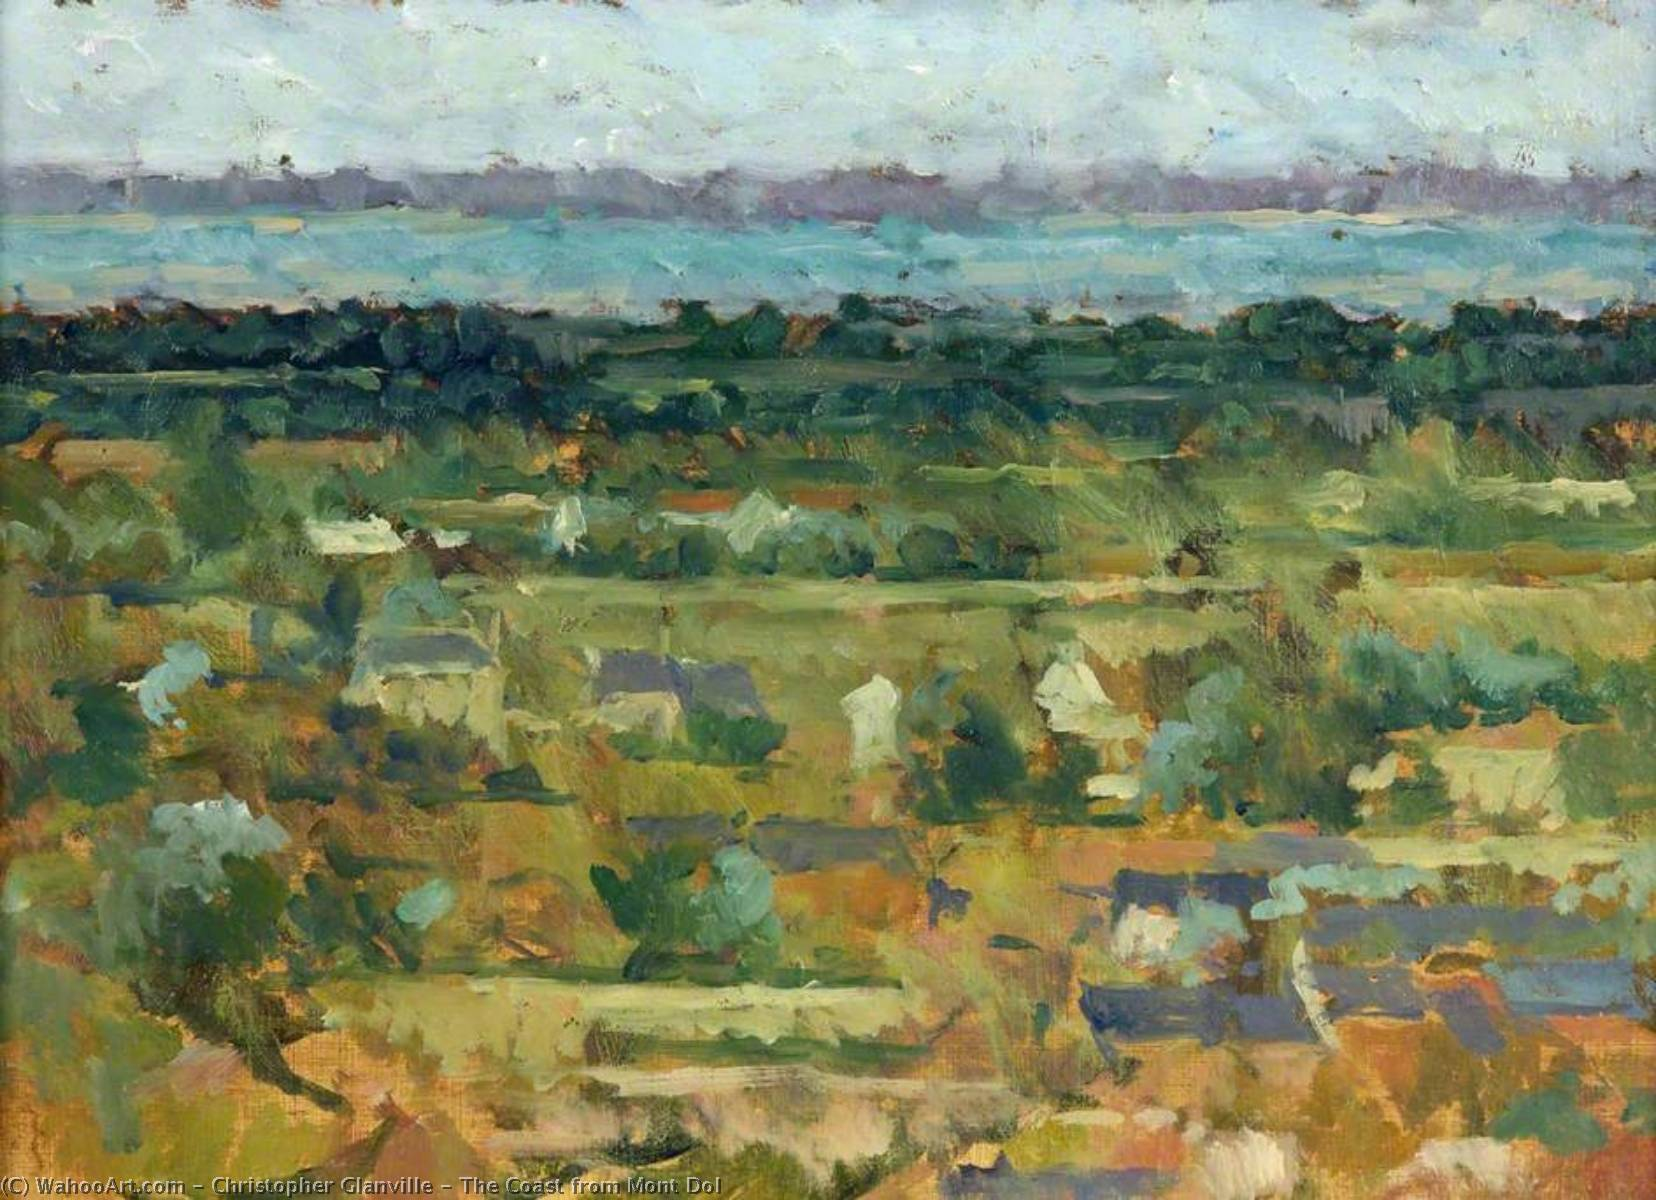 Wikioo.org - The Encyclopedia of Fine Arts - Painting, Artwork by Christopher Glanville - The Coast from Mont Dol